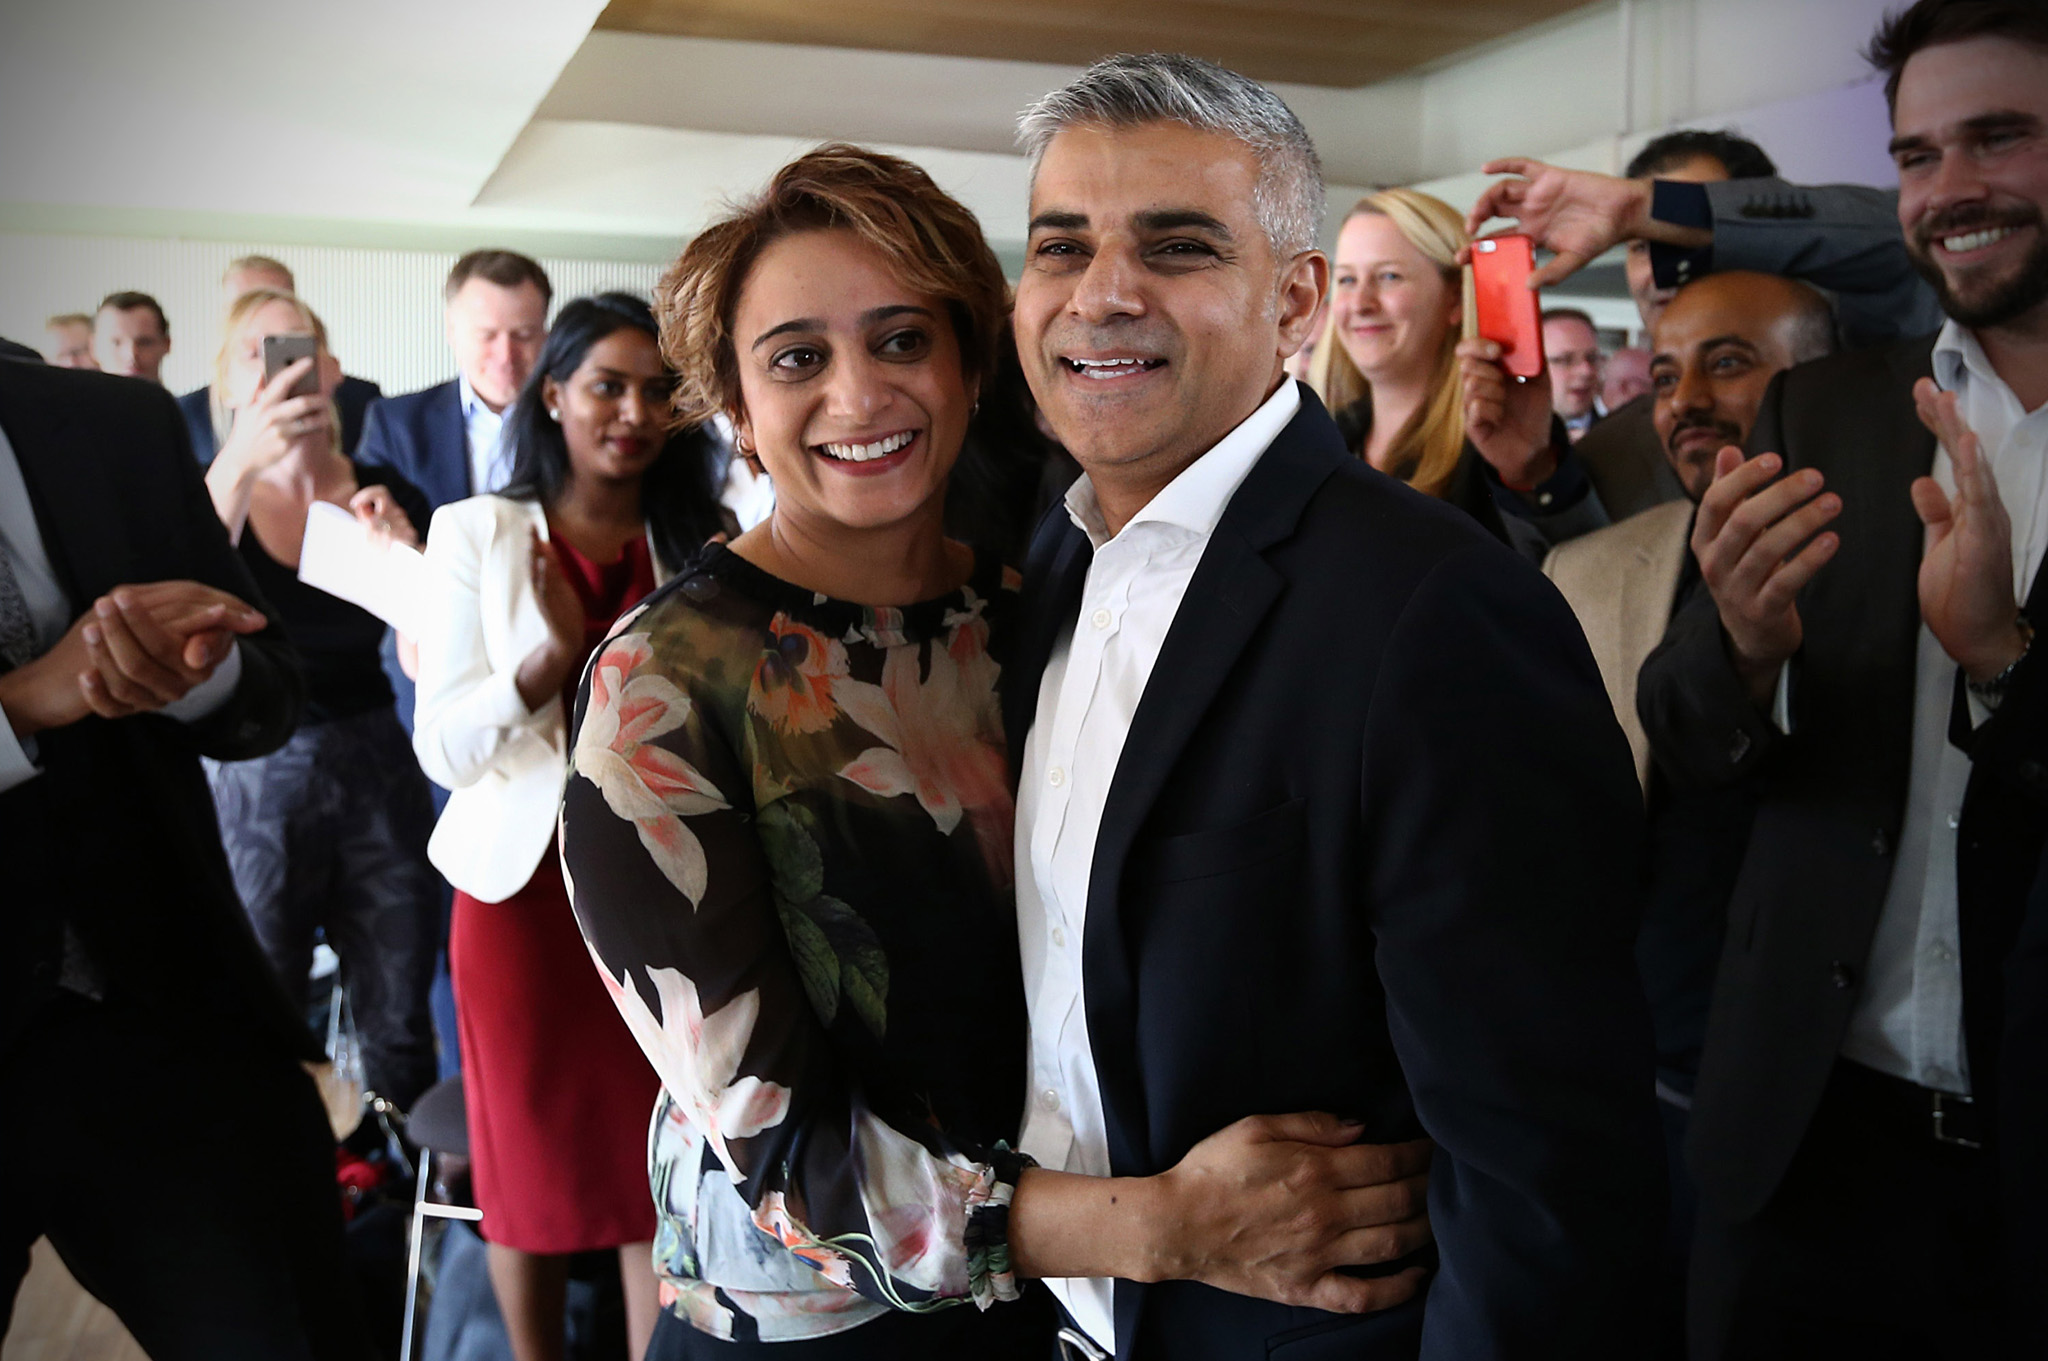 ***BESTPIX*** Labour Announce Their Candidate To Run For London Mayor In 2016...LONDON, ENGLAND - SEPTEMBER 11:  Labour Member of Parliament for Tooting and London mayoral candidate, Sadiq Khan (R), is congratulated by his wife Saadiya after winning the contest to become Labour's candidate to become London mayor at the Royal Festival Hall on September 11, 2015 in London, England. Mr Khan beat five other candidates to the position to stand in next years mayoral election.  (Photo by Carl Court/Getty Images)  ***BESTPIX***